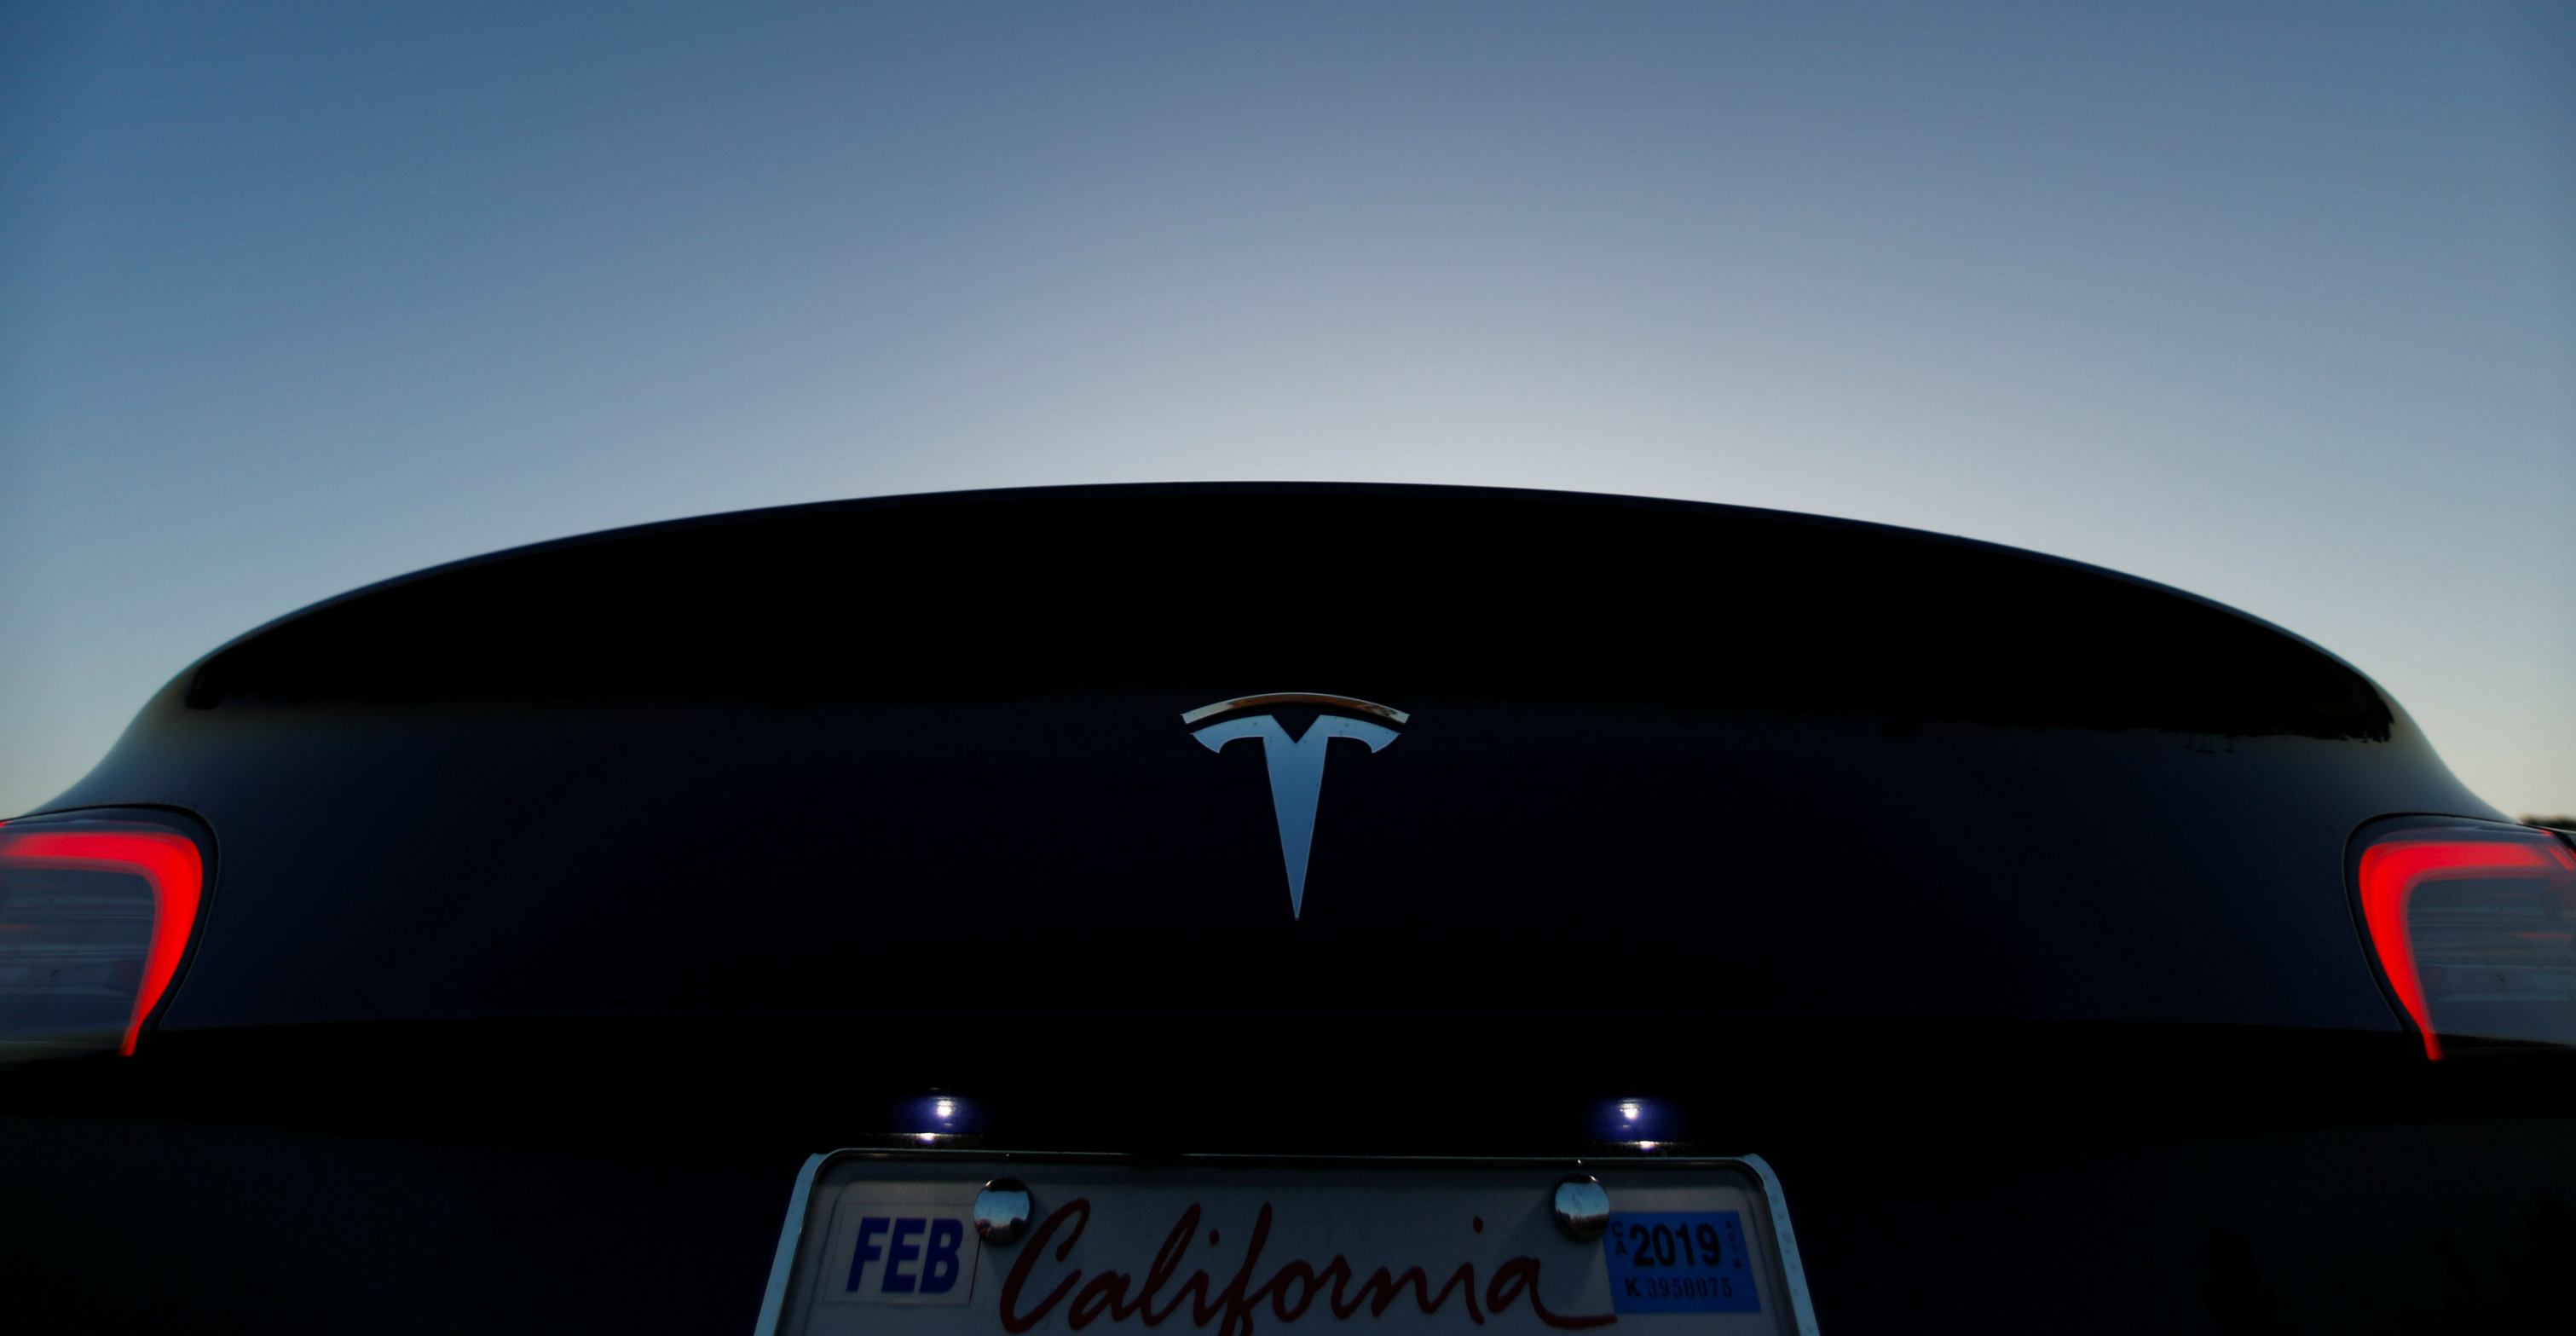 Tesla's Model 3 achieved the top rating, five stars, under the safety ratings program of the US National Highway Traffic Safety Administration, along with several other vehicles. Photo: Reuters